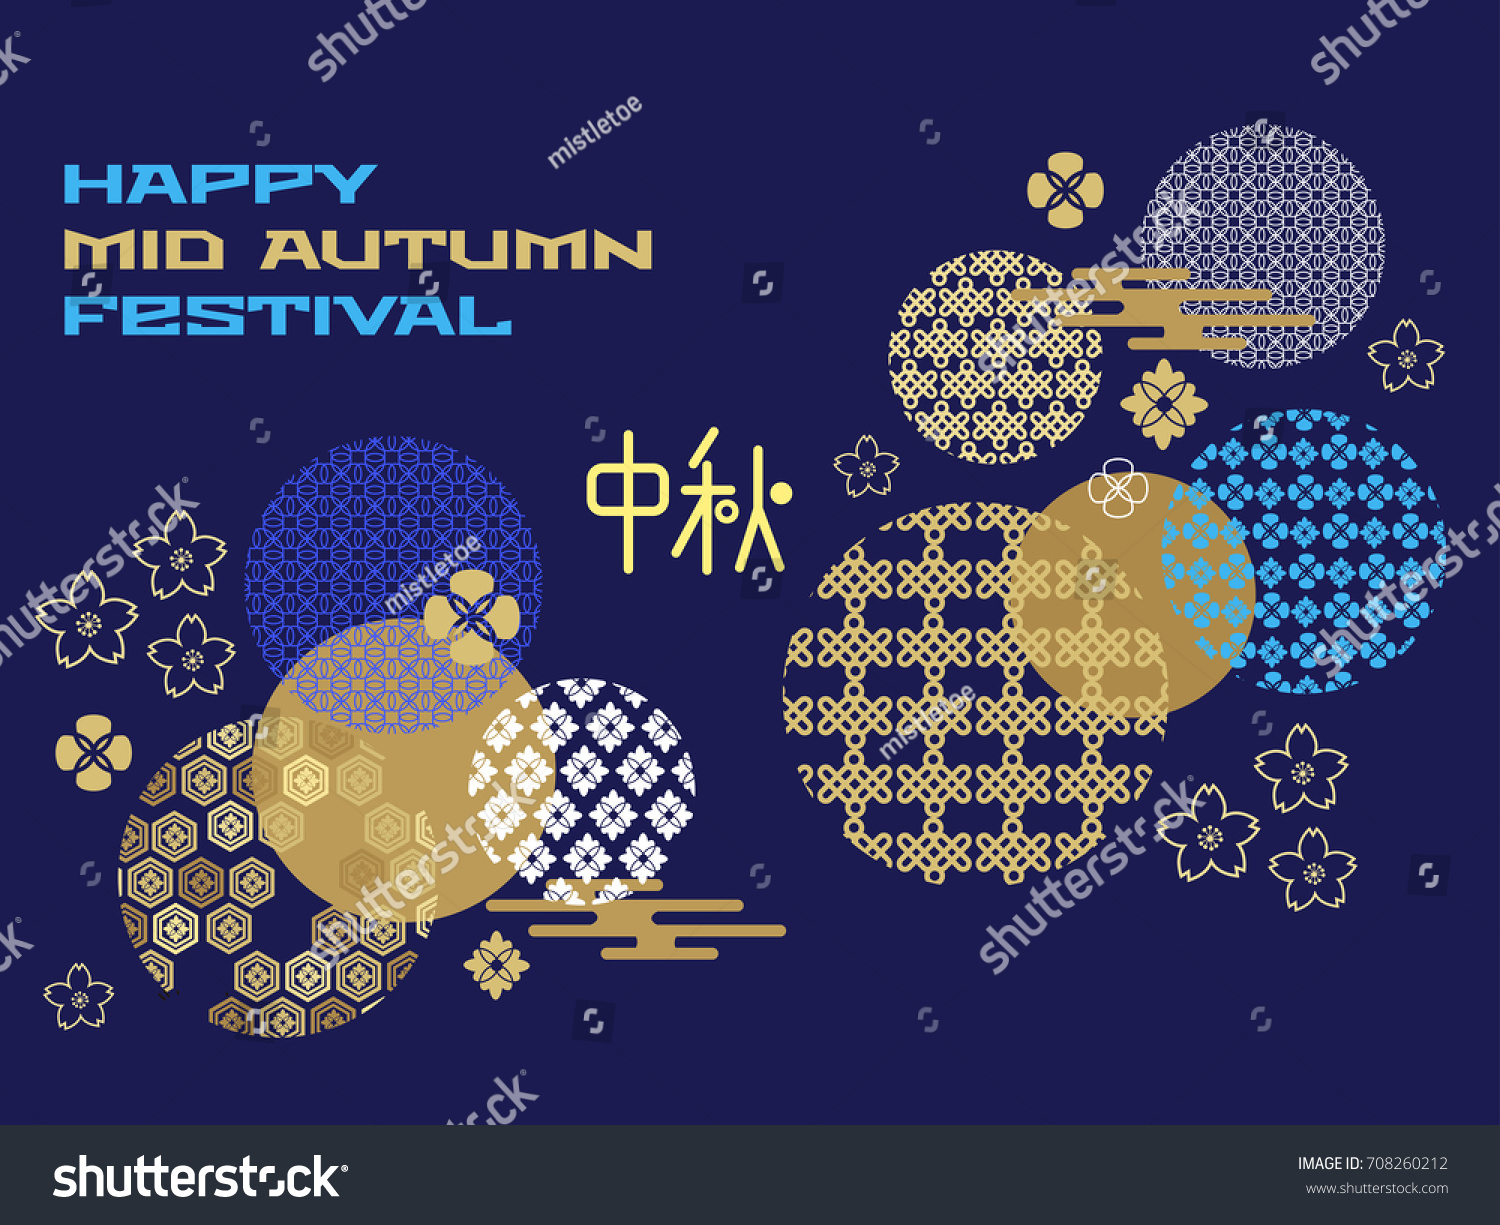 Mid autumn festival greetings template design stock vector 708260212 mid autumn festival greetings template design with lanterns clouds flowers chinese translate kristyandbryce Choice Image